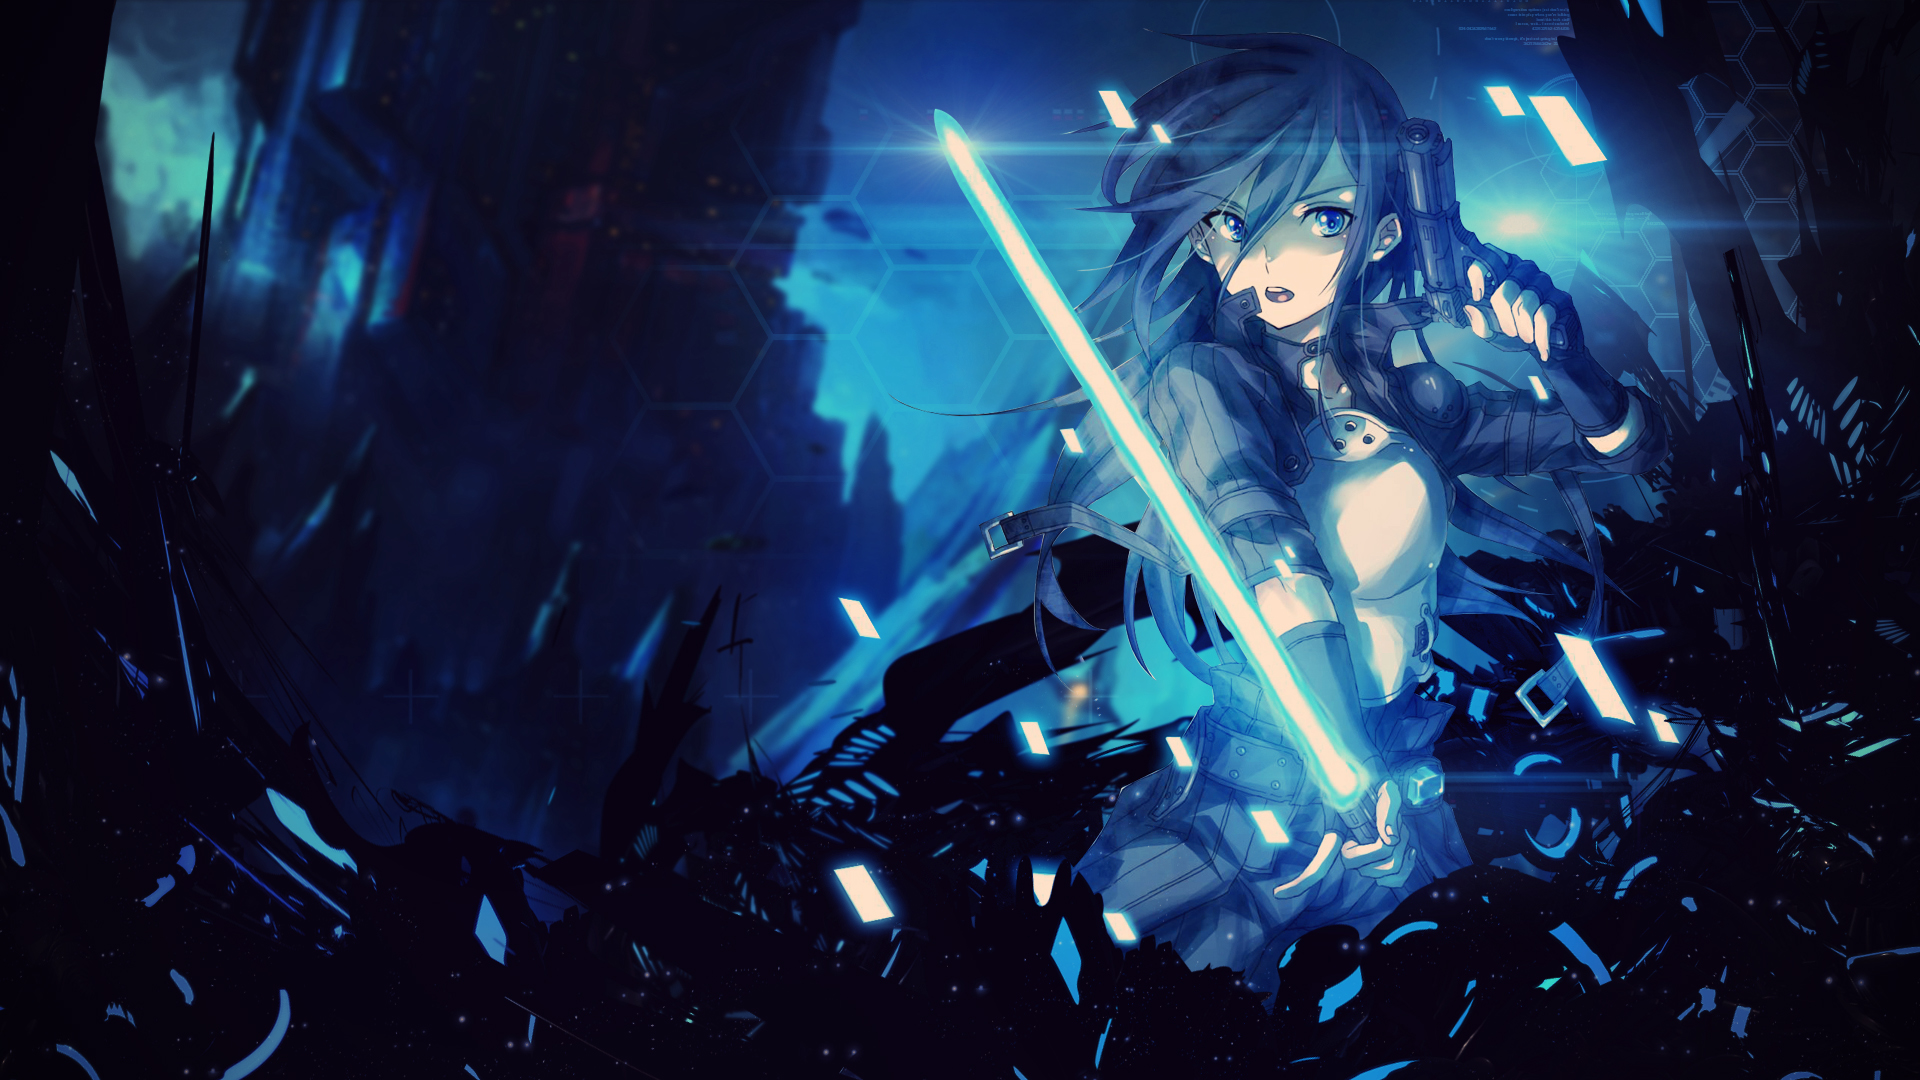 Sword Art Online Ggo Kirito Wallpaper By Trinexz On Deviantart